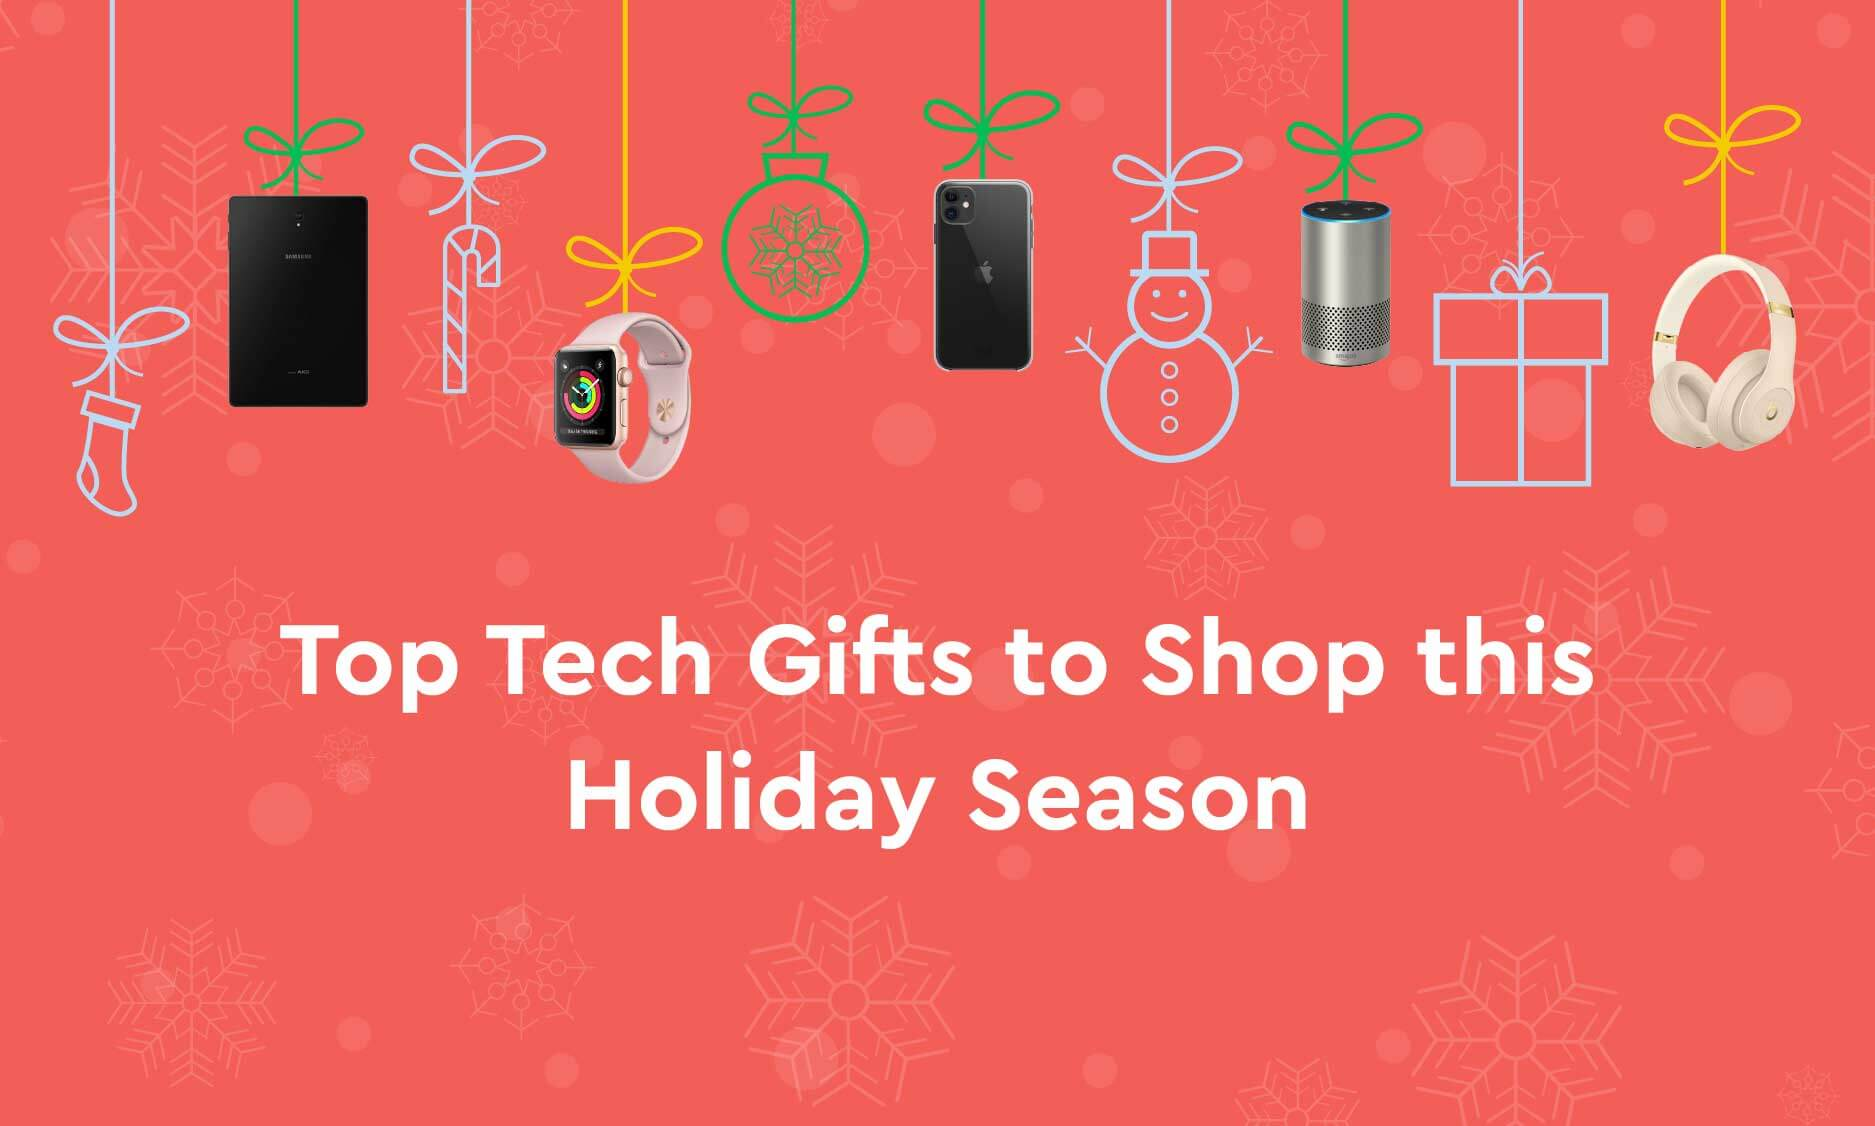 Top Tech Gifts to Shop this Holiday Season